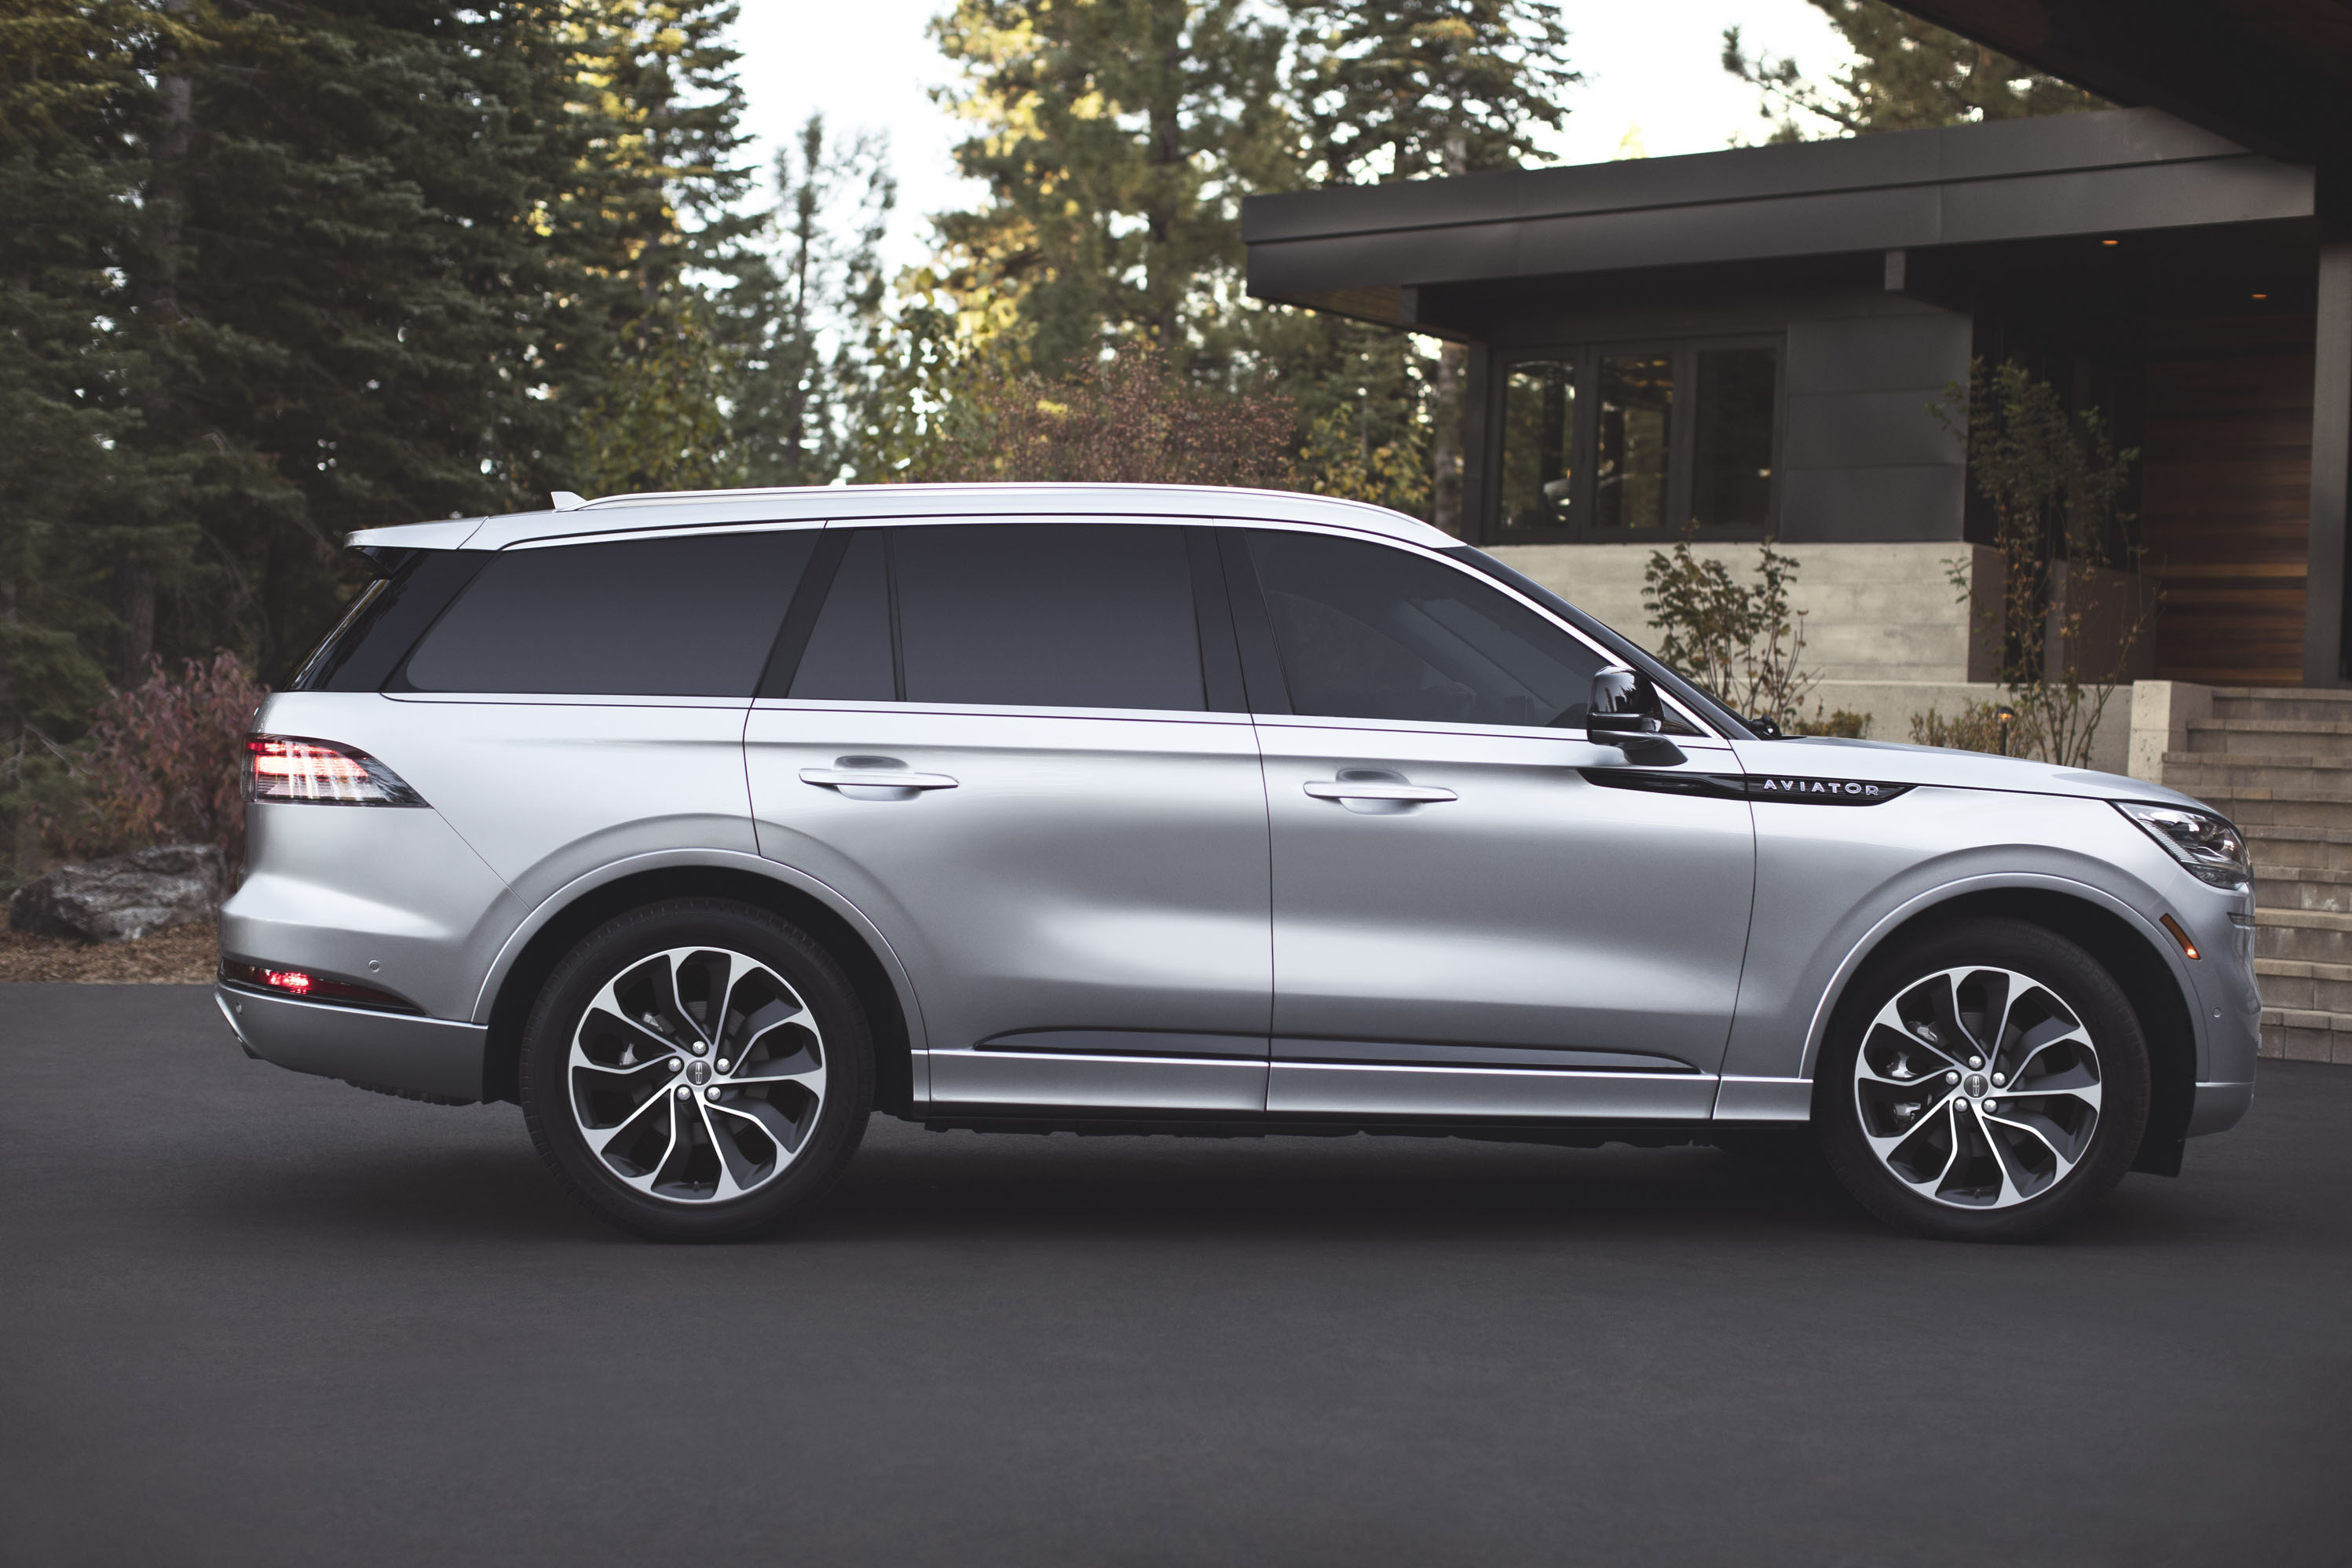 2020 Lincoln Aviator preview